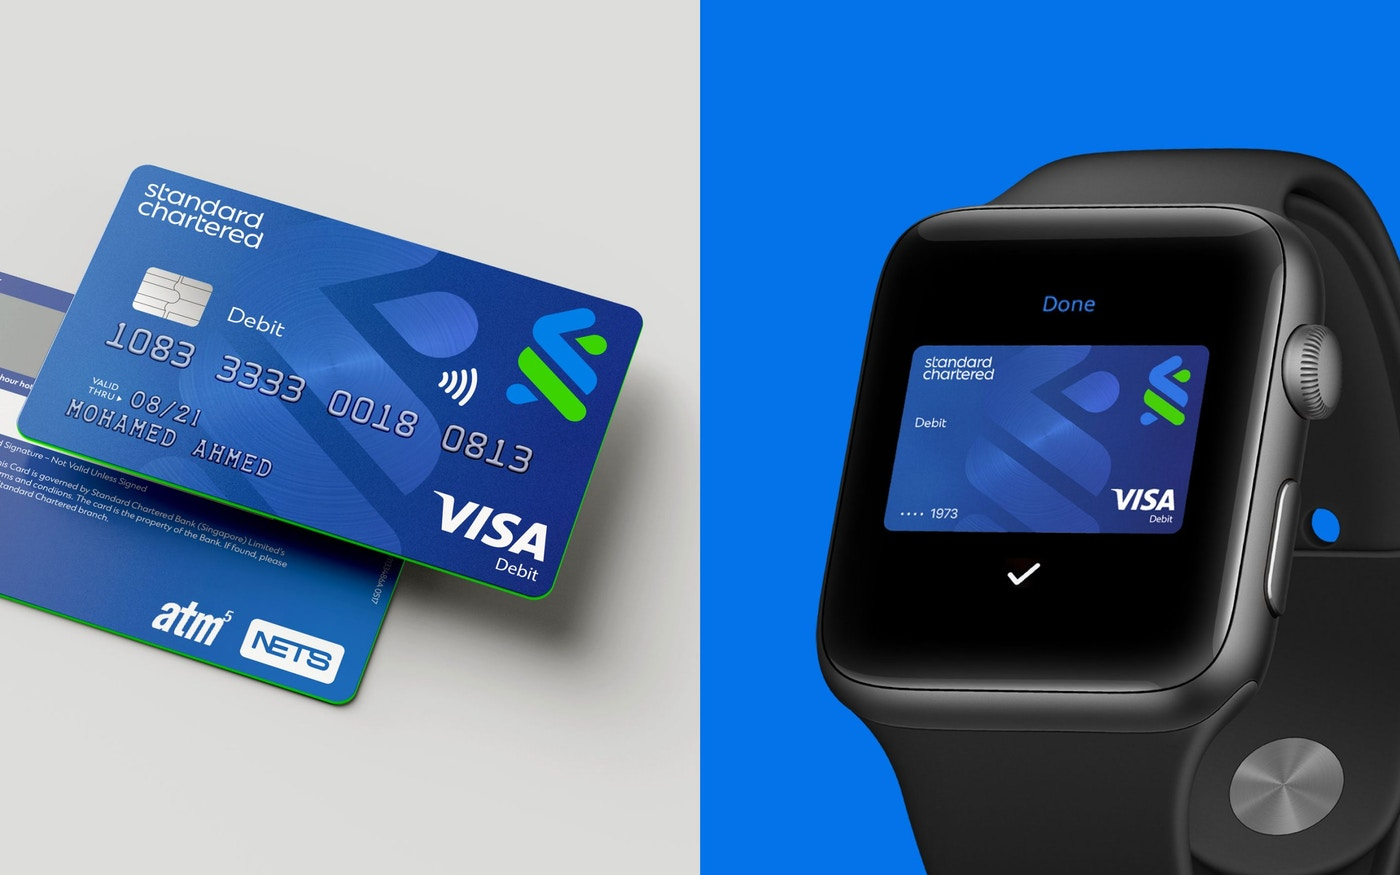 New Standard Chartered credit cards and smart watch